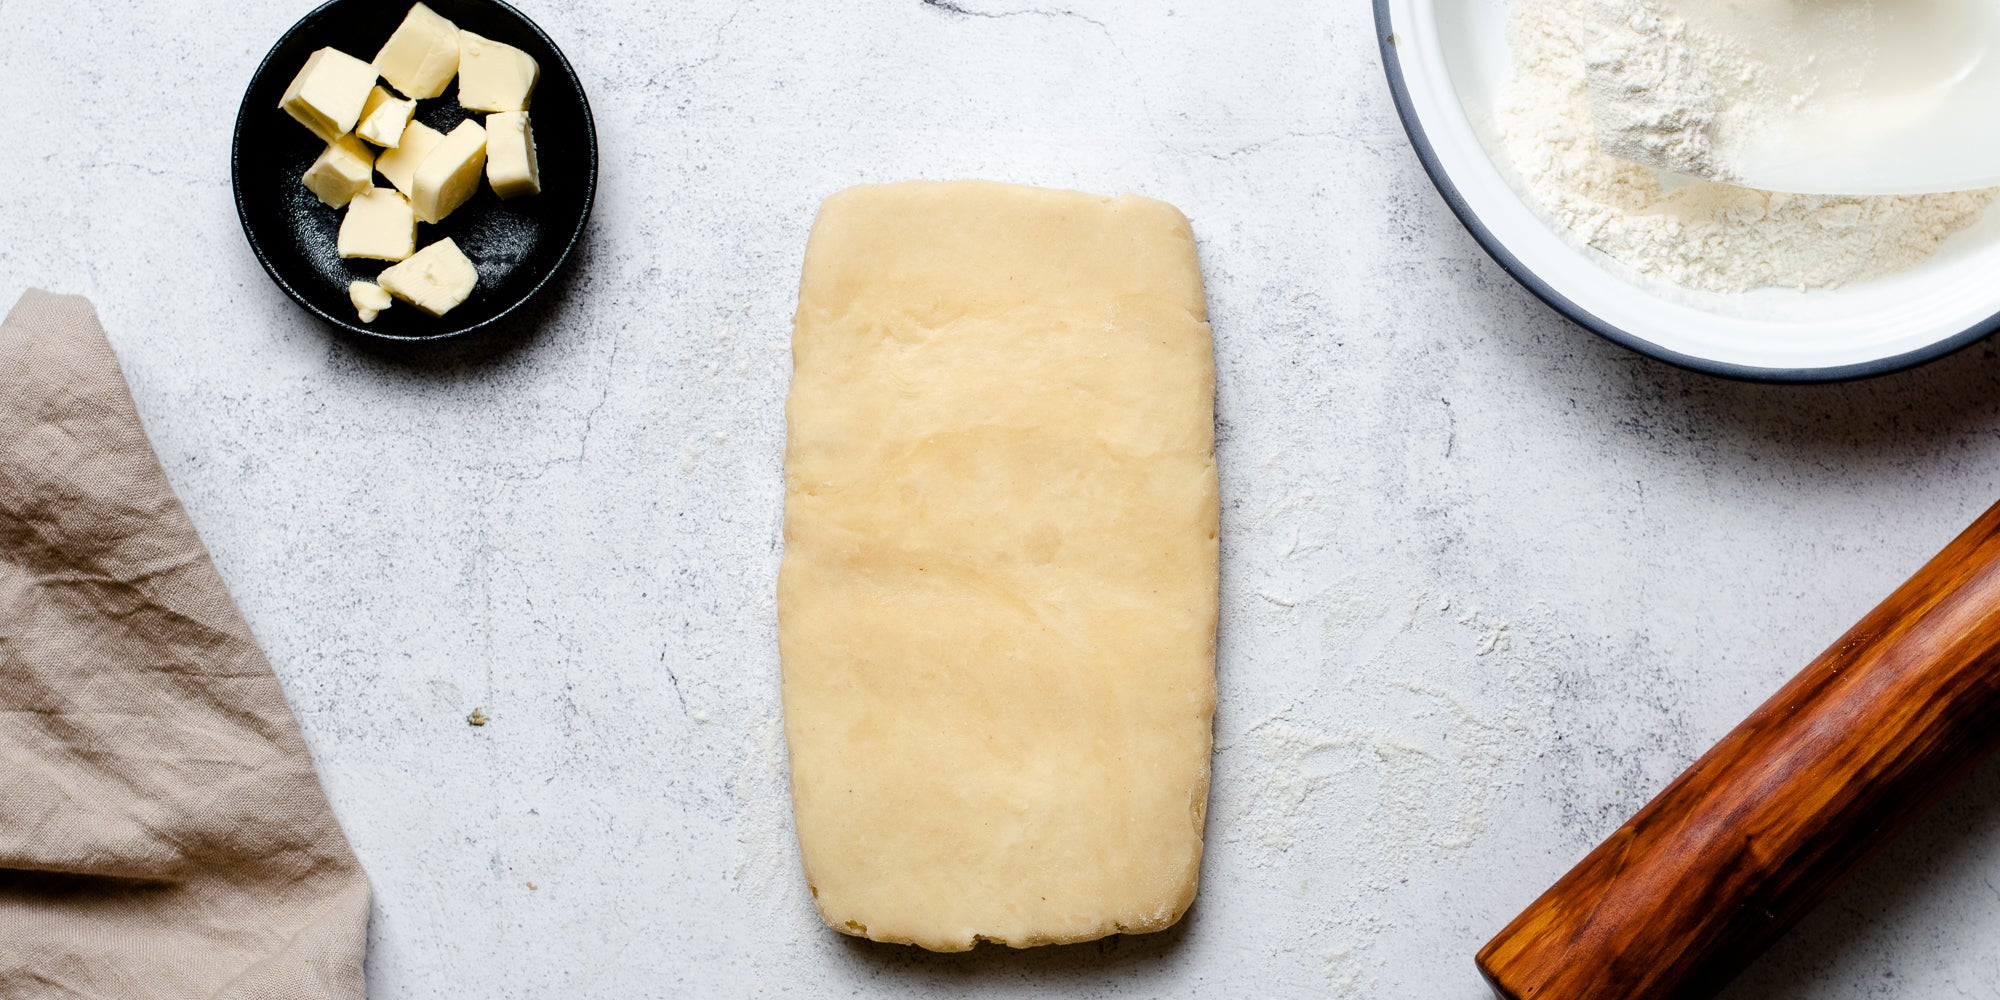 Puff Pastry rolled out onto a surface next to a dish of butter, bowl of flour and rolling pin